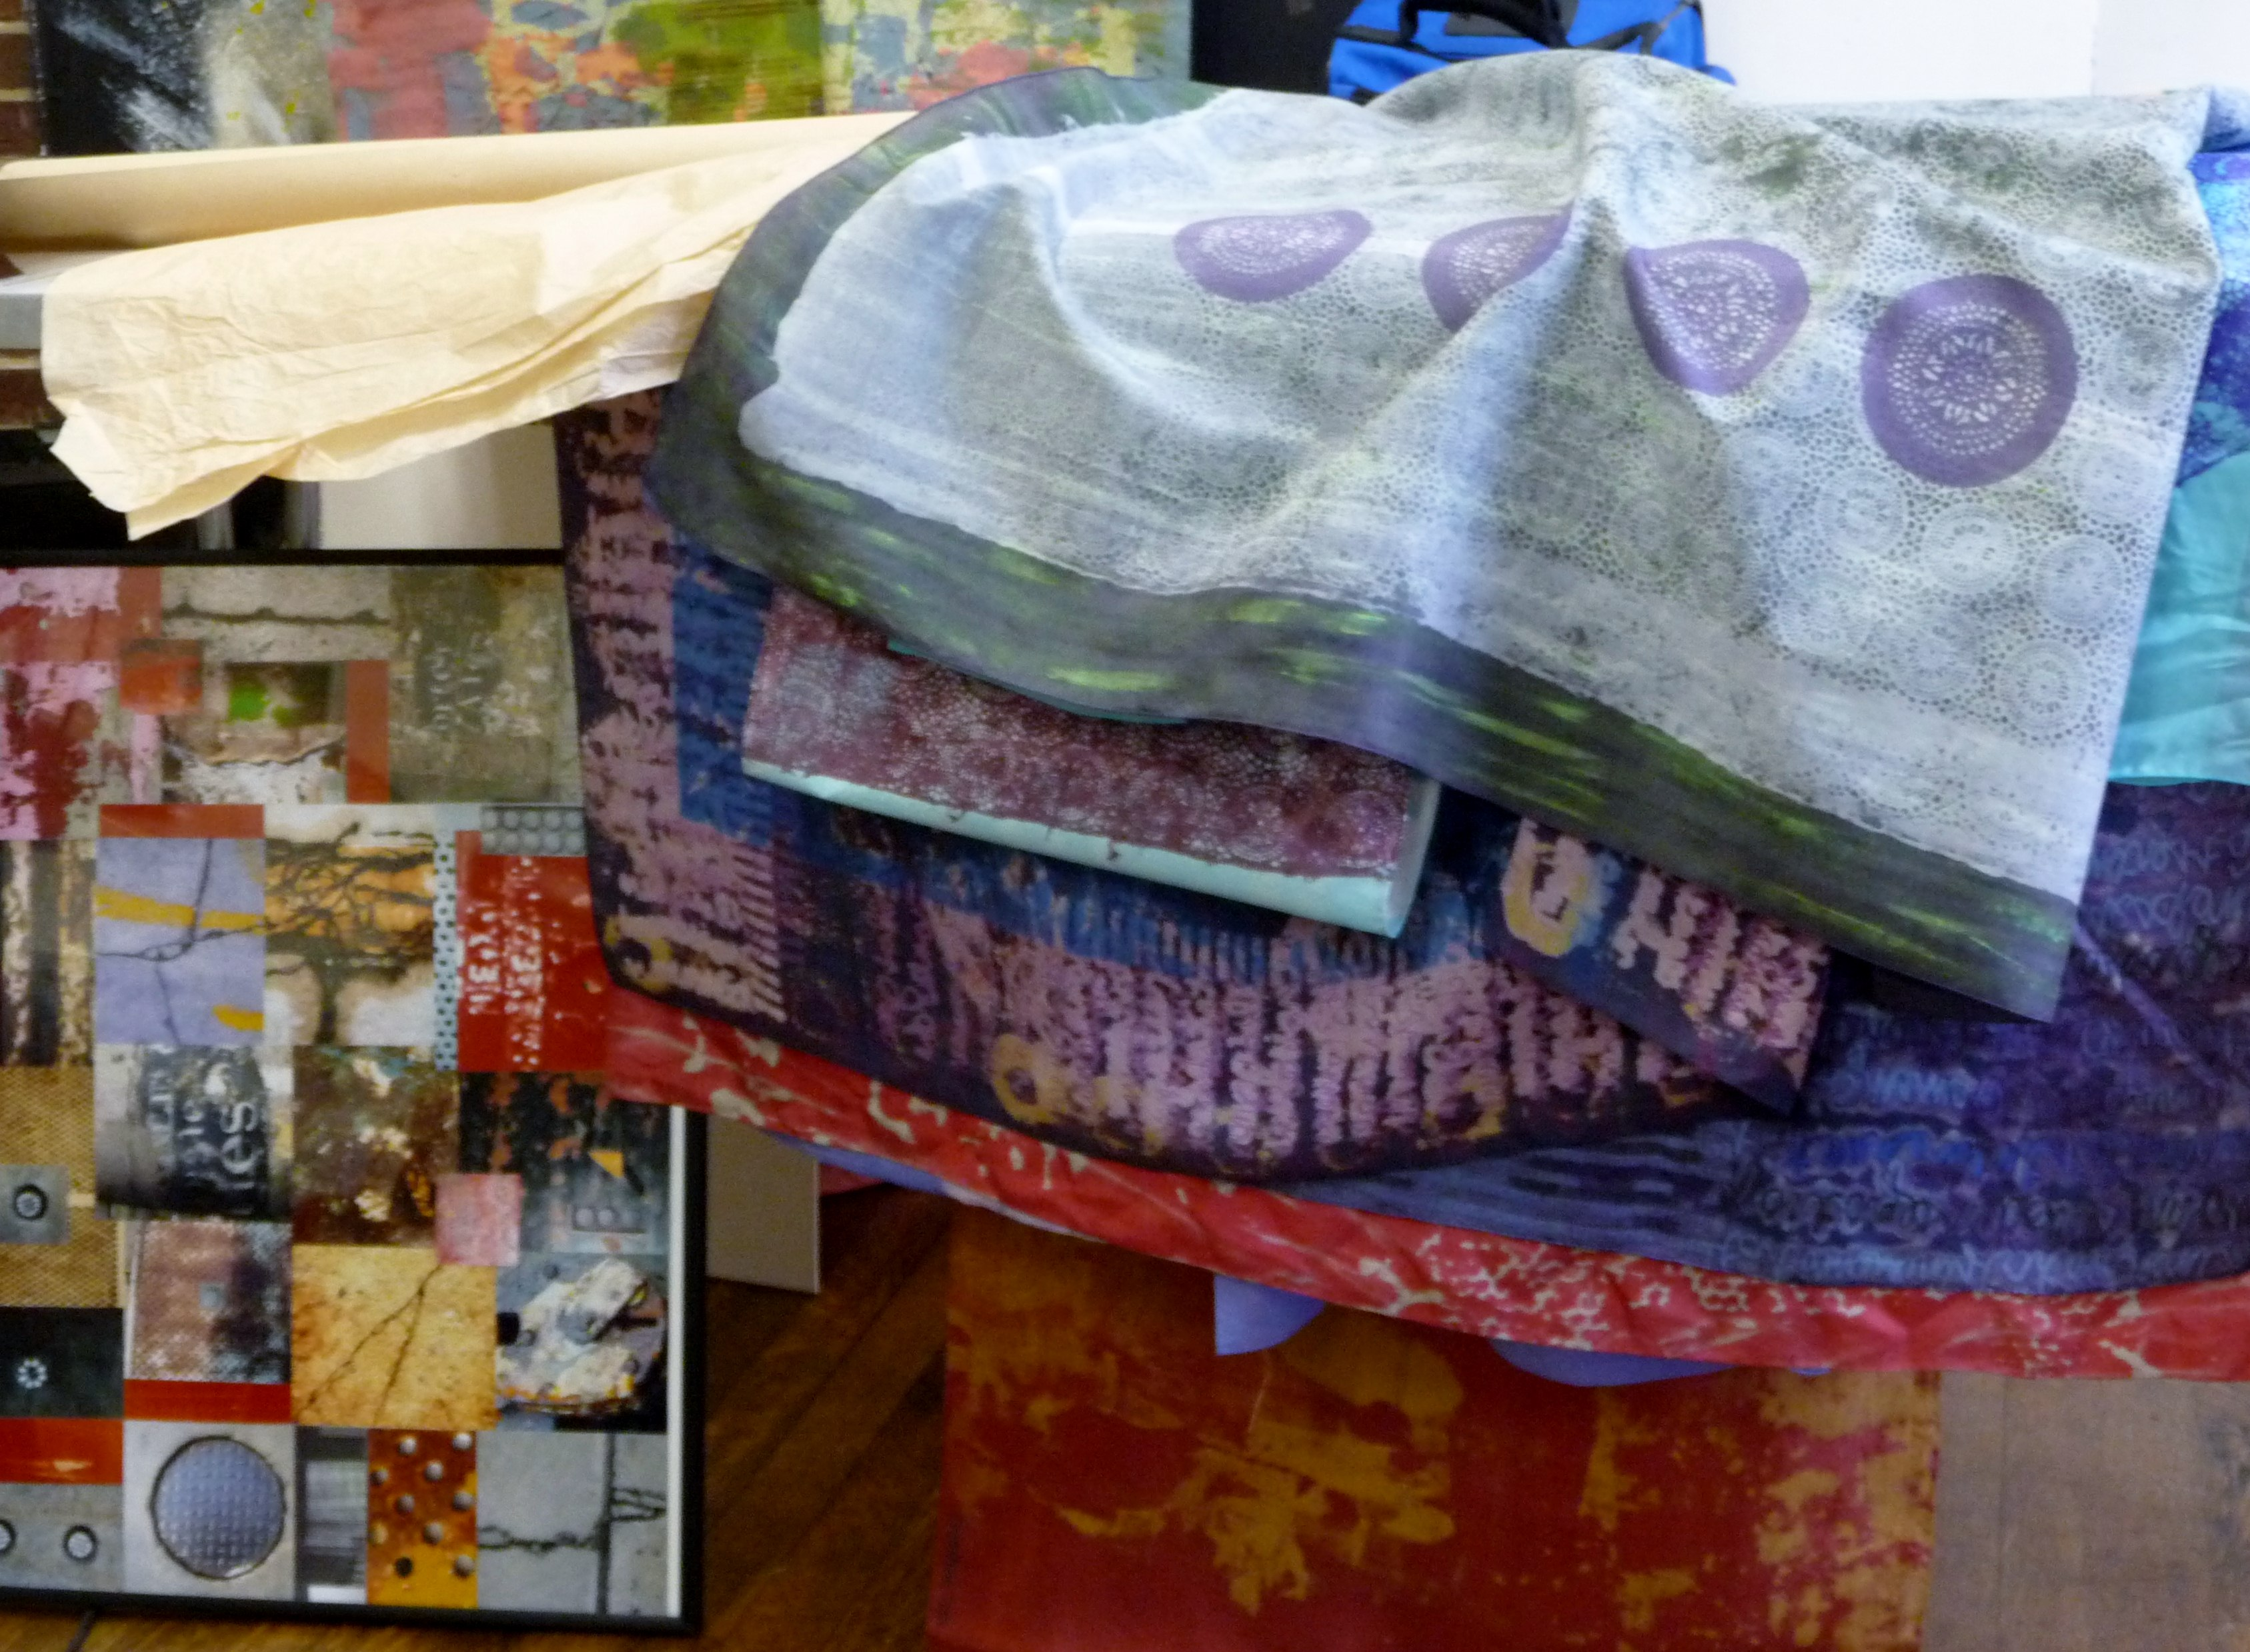 display of Christine Toh's textiles